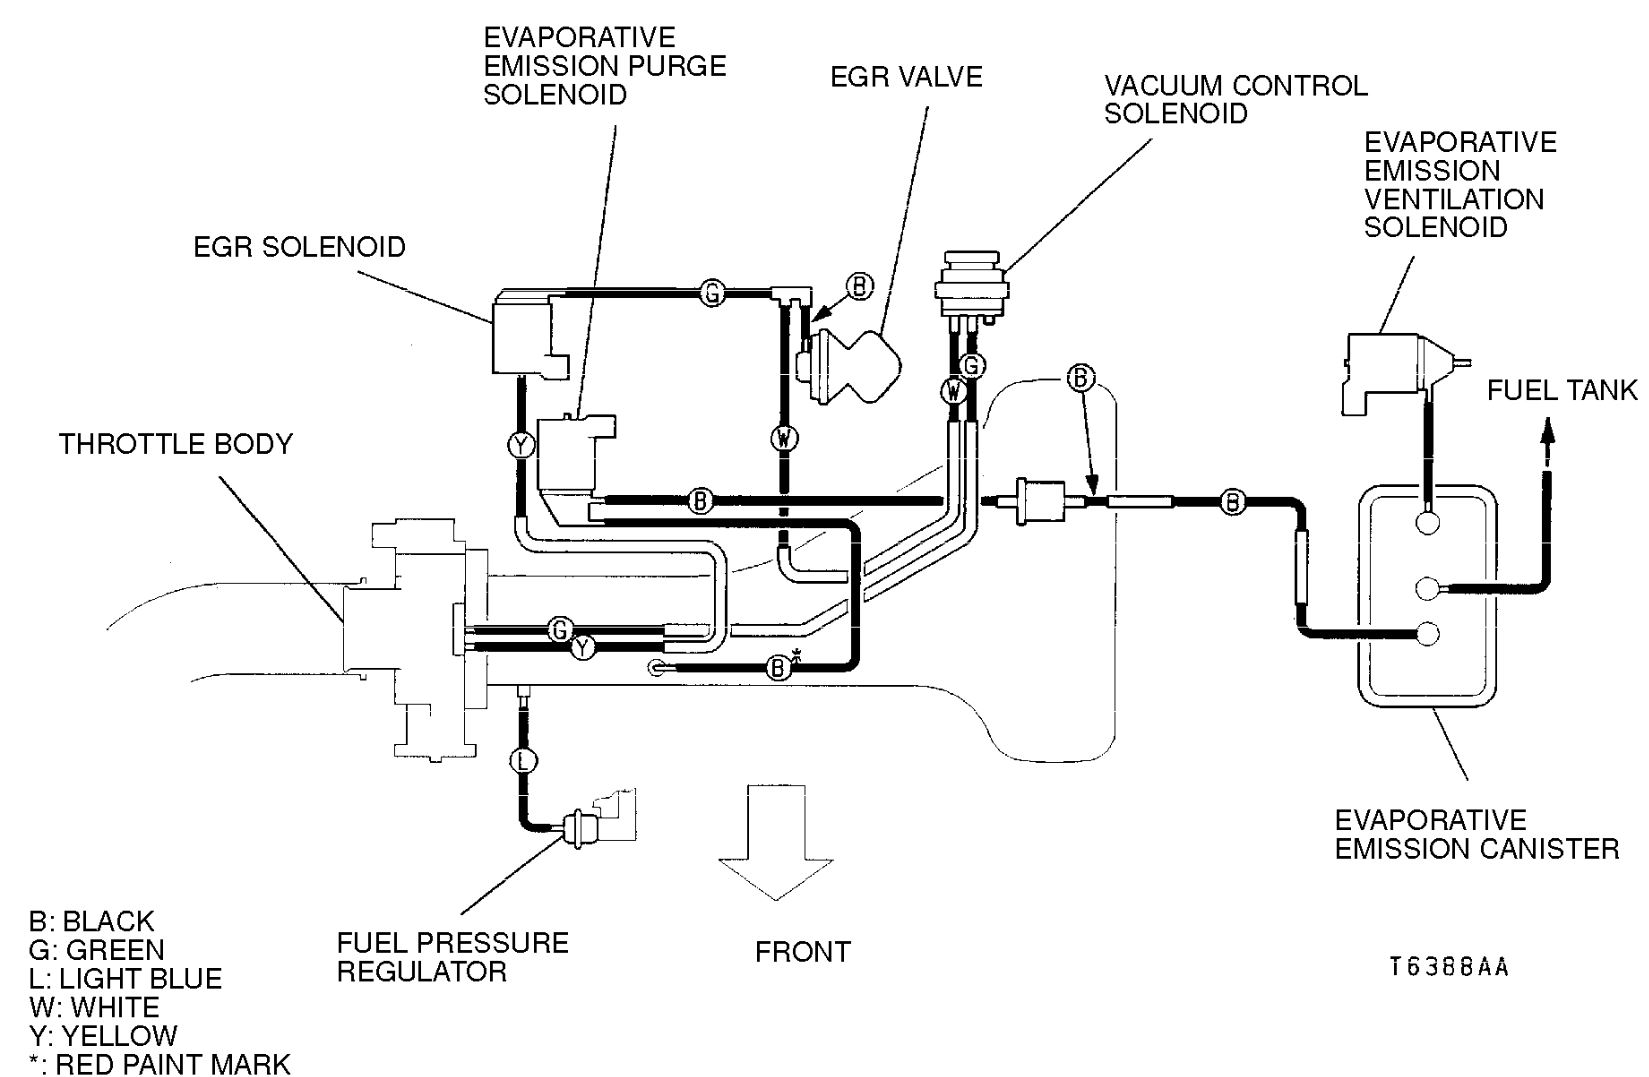 1999 mitsubishi montero sport engine diagram product wiring diagrams u2022 rh genesisventures us 2000 mitsubishi montero sport engine diagram 2000 montero sport engine diagram